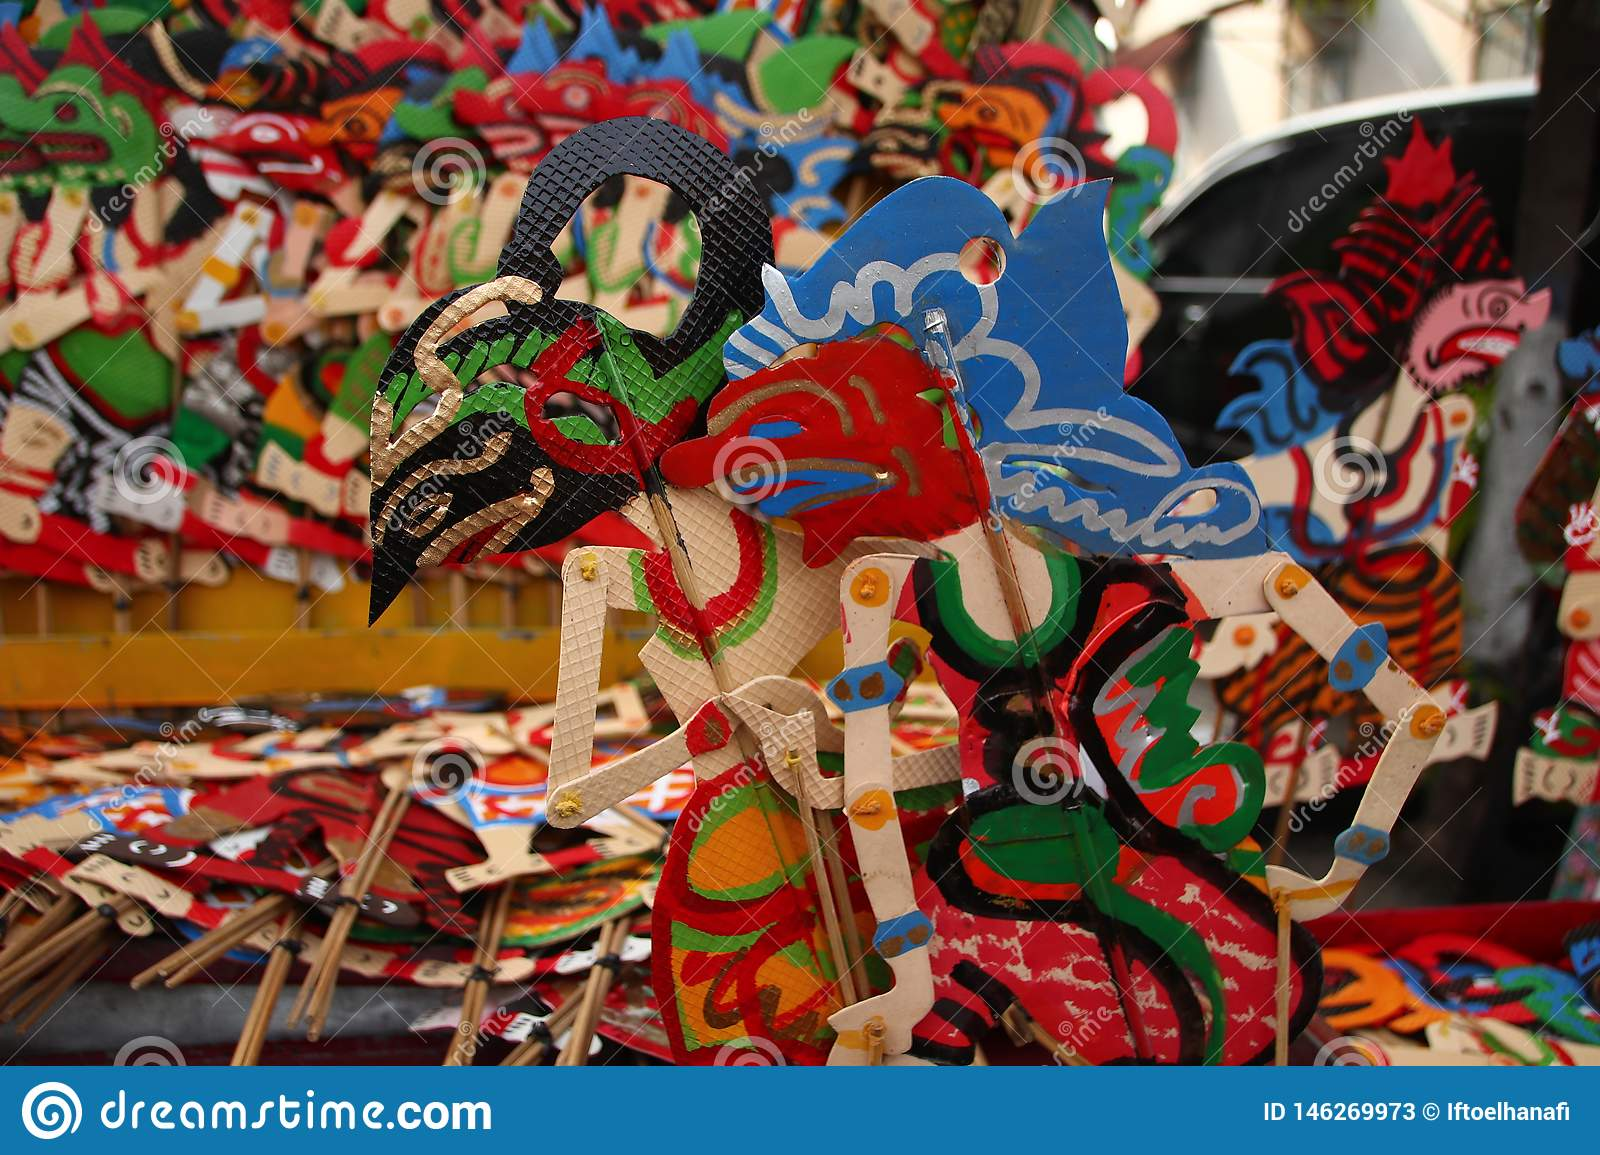 Wayang Kulit sellers on the streets, while exhibiting their selling products in Tegal / Central Java, Indonesia,